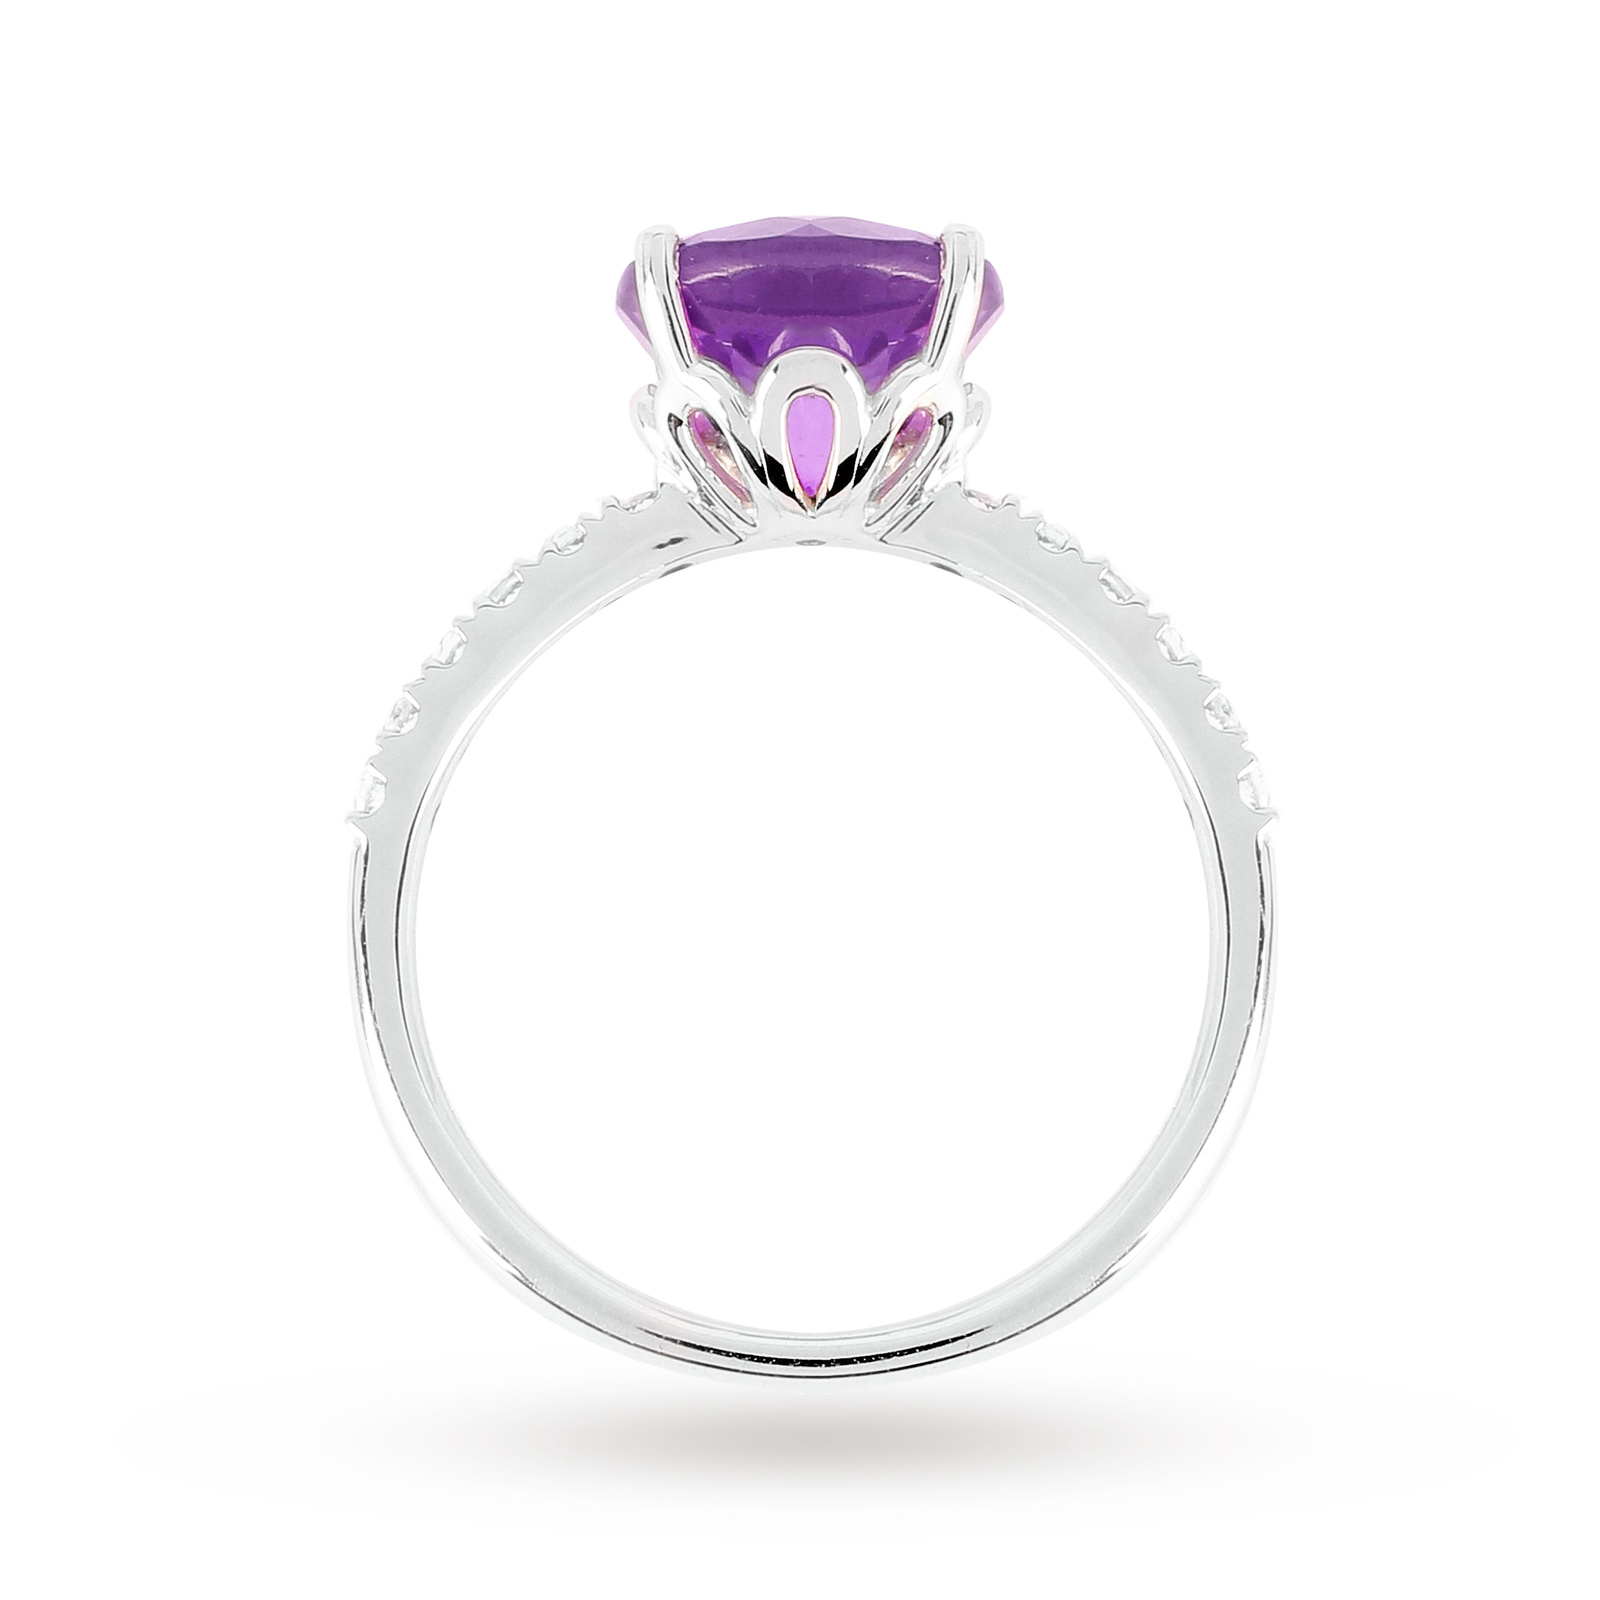 9ct White Gold 8x8mm Amethyst And 0.16ct White Topaz Ring